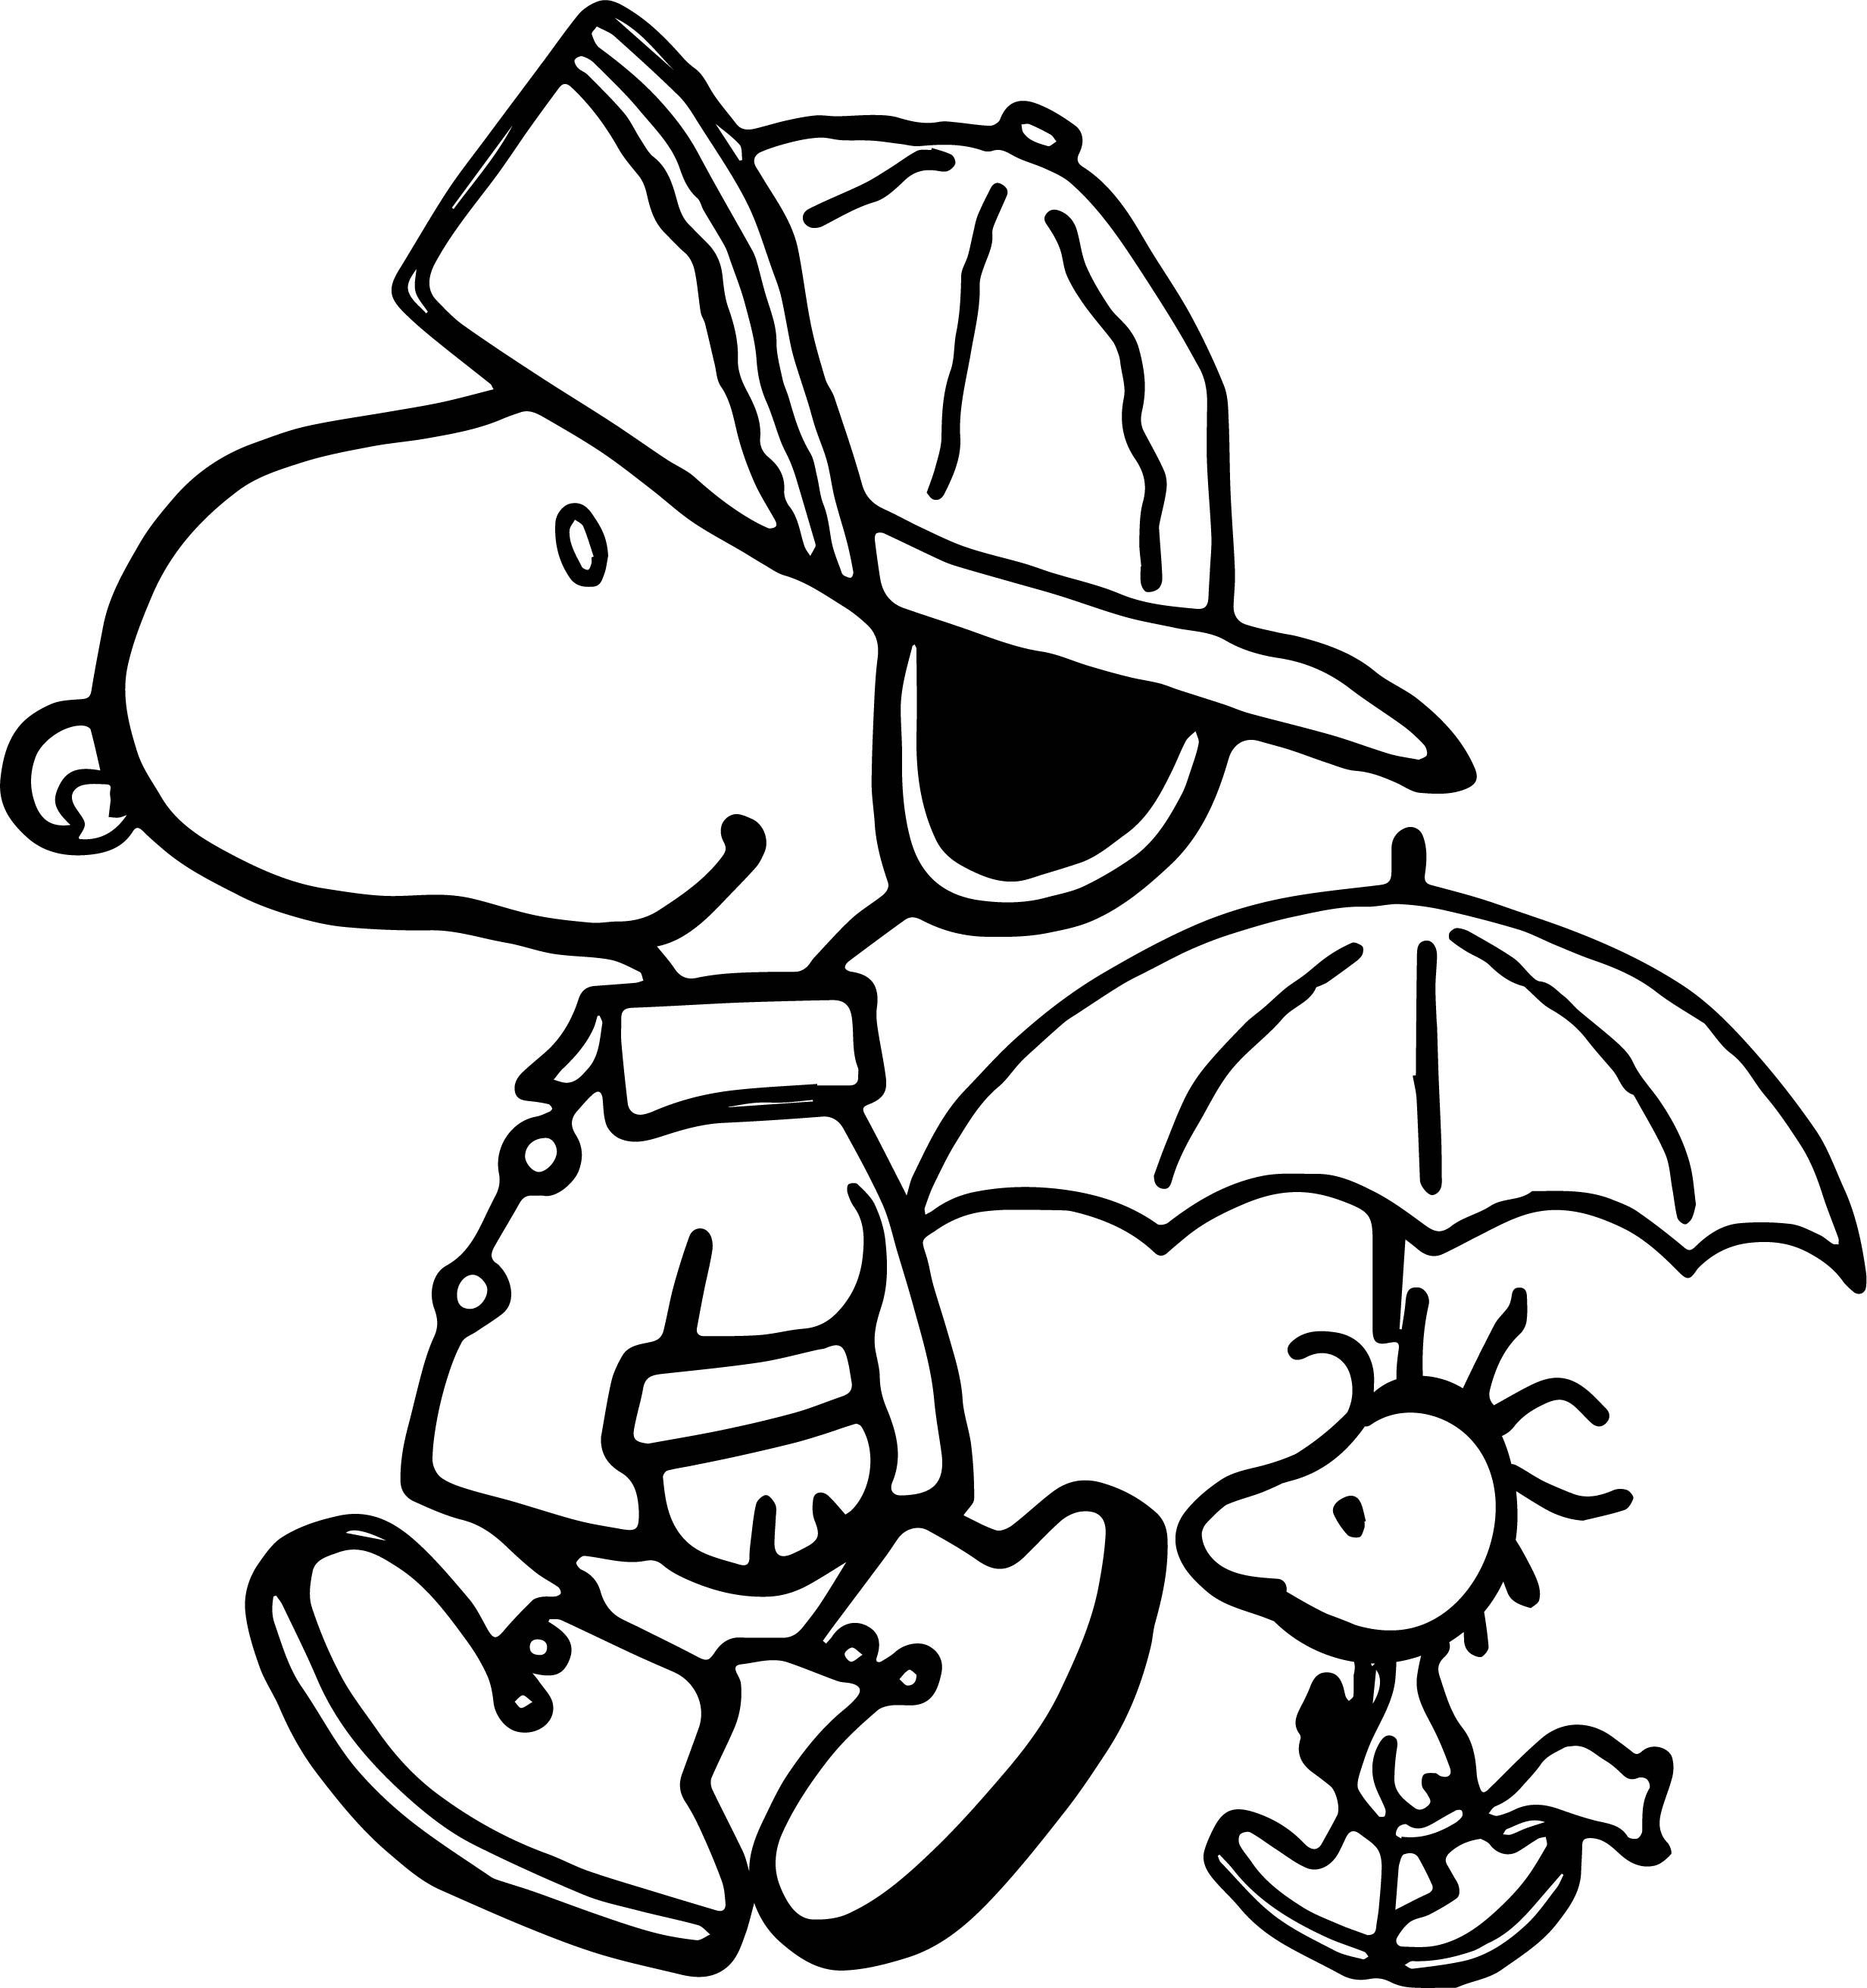 snoopy coloring sheets peanuts snoopy rain gear coloring page peanuts snoopy snoopy sheets coloring